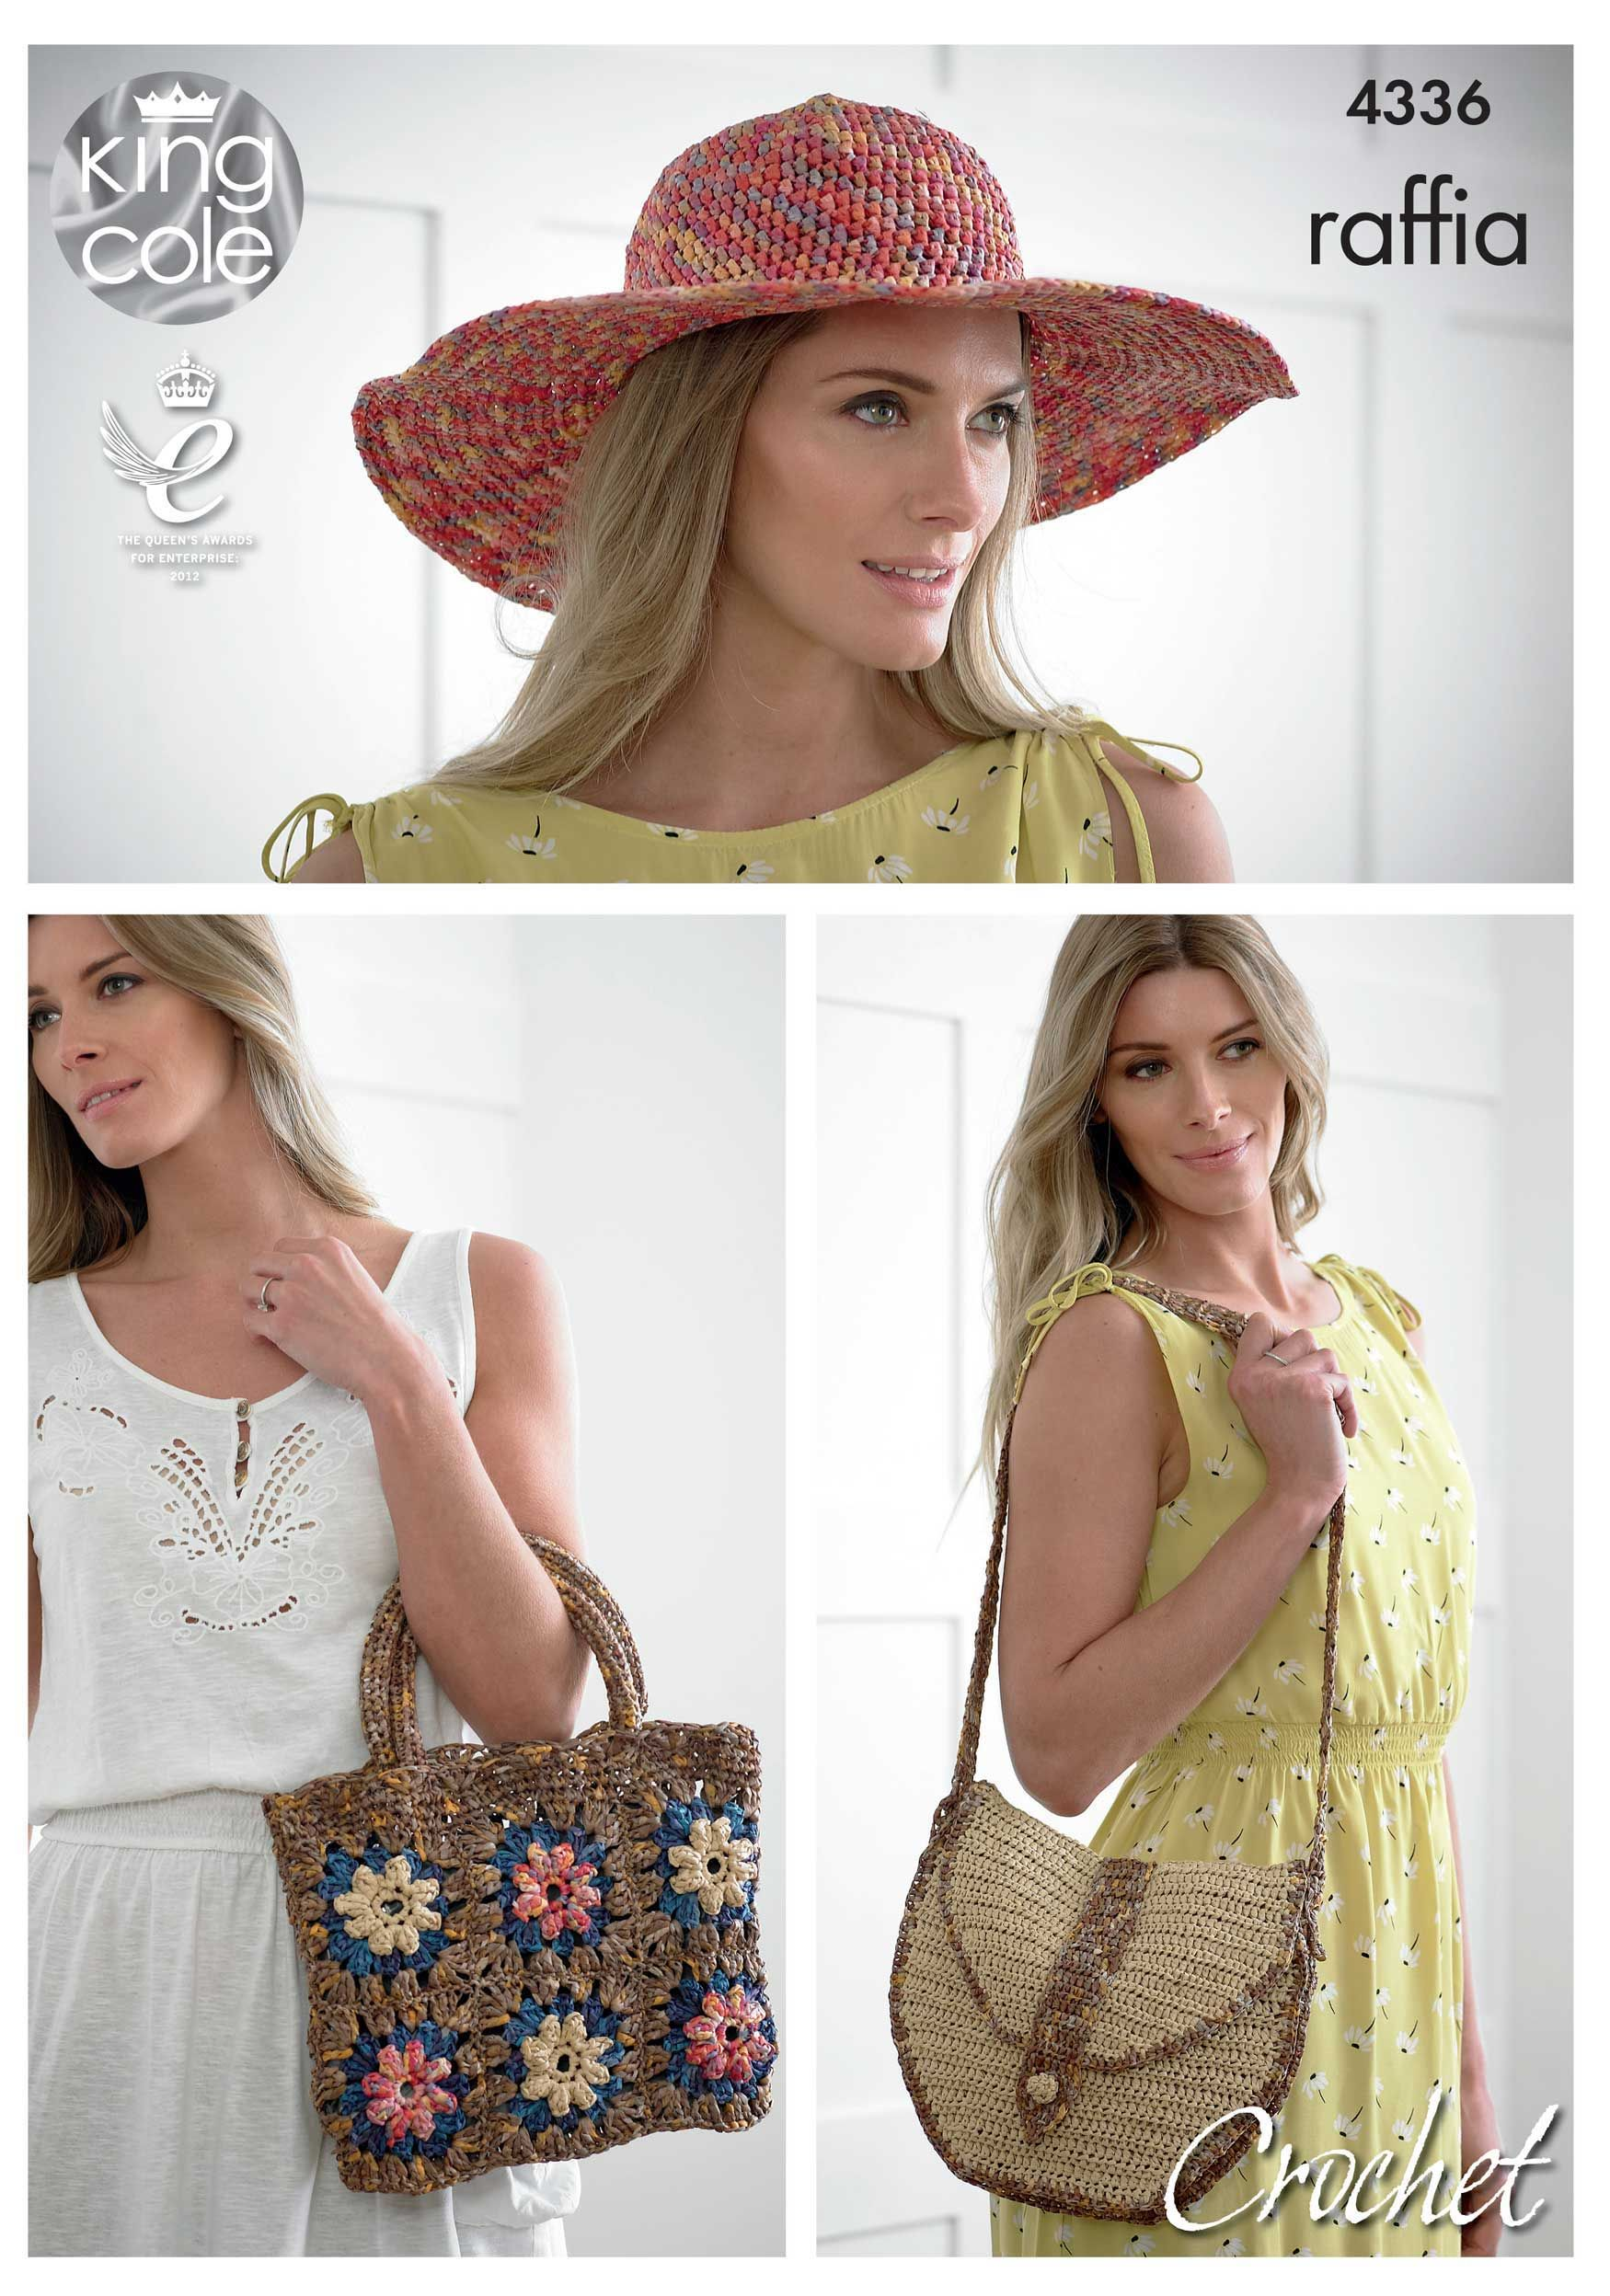 Crocheted Hats and Bags - King Cole   Fancy Yarns   Pinterest